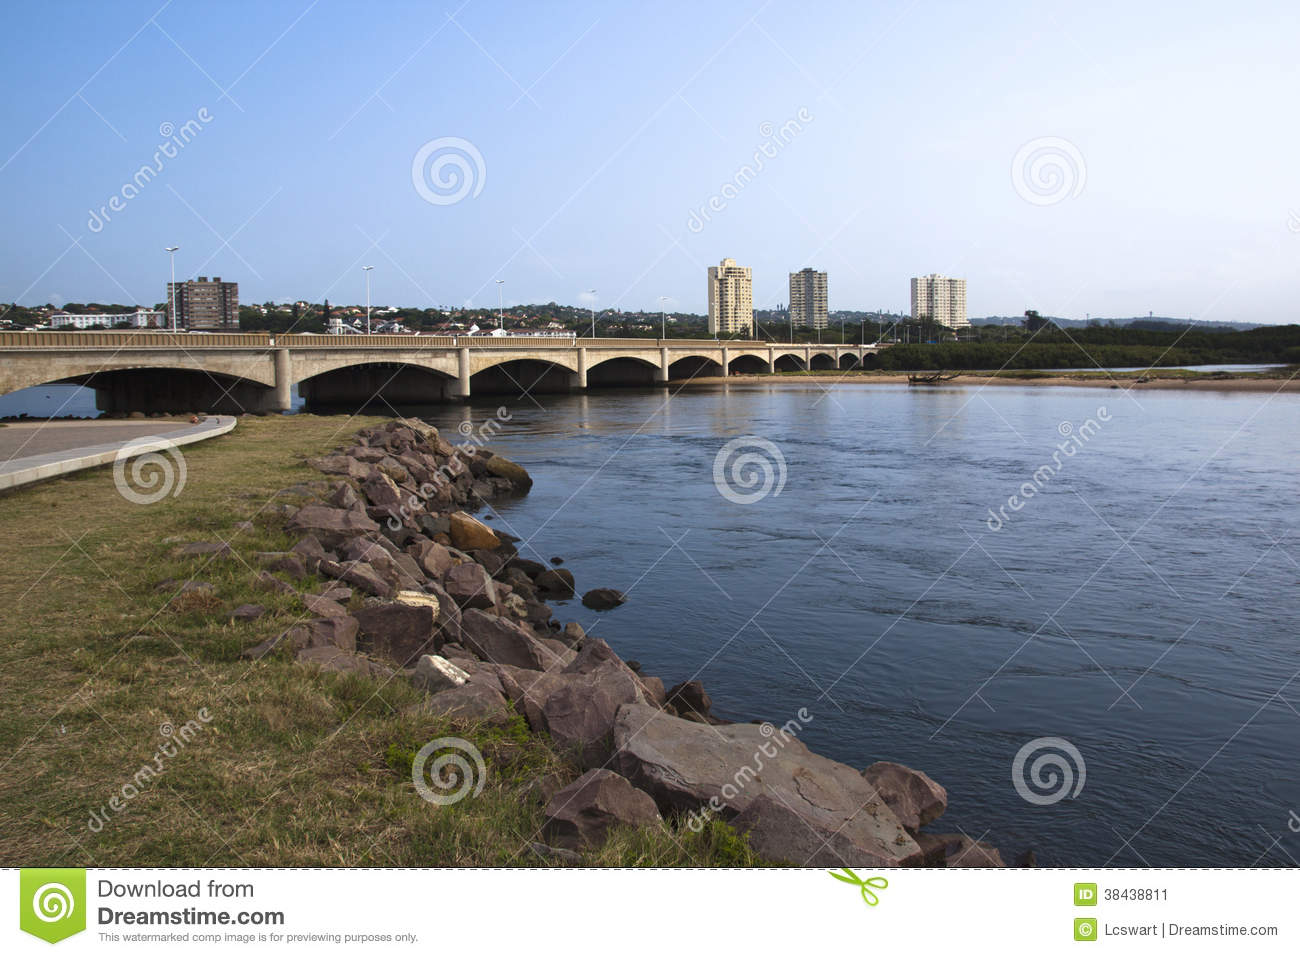 Traffic Bridge Over Mouth Of Umgeni River Durban South Africa.